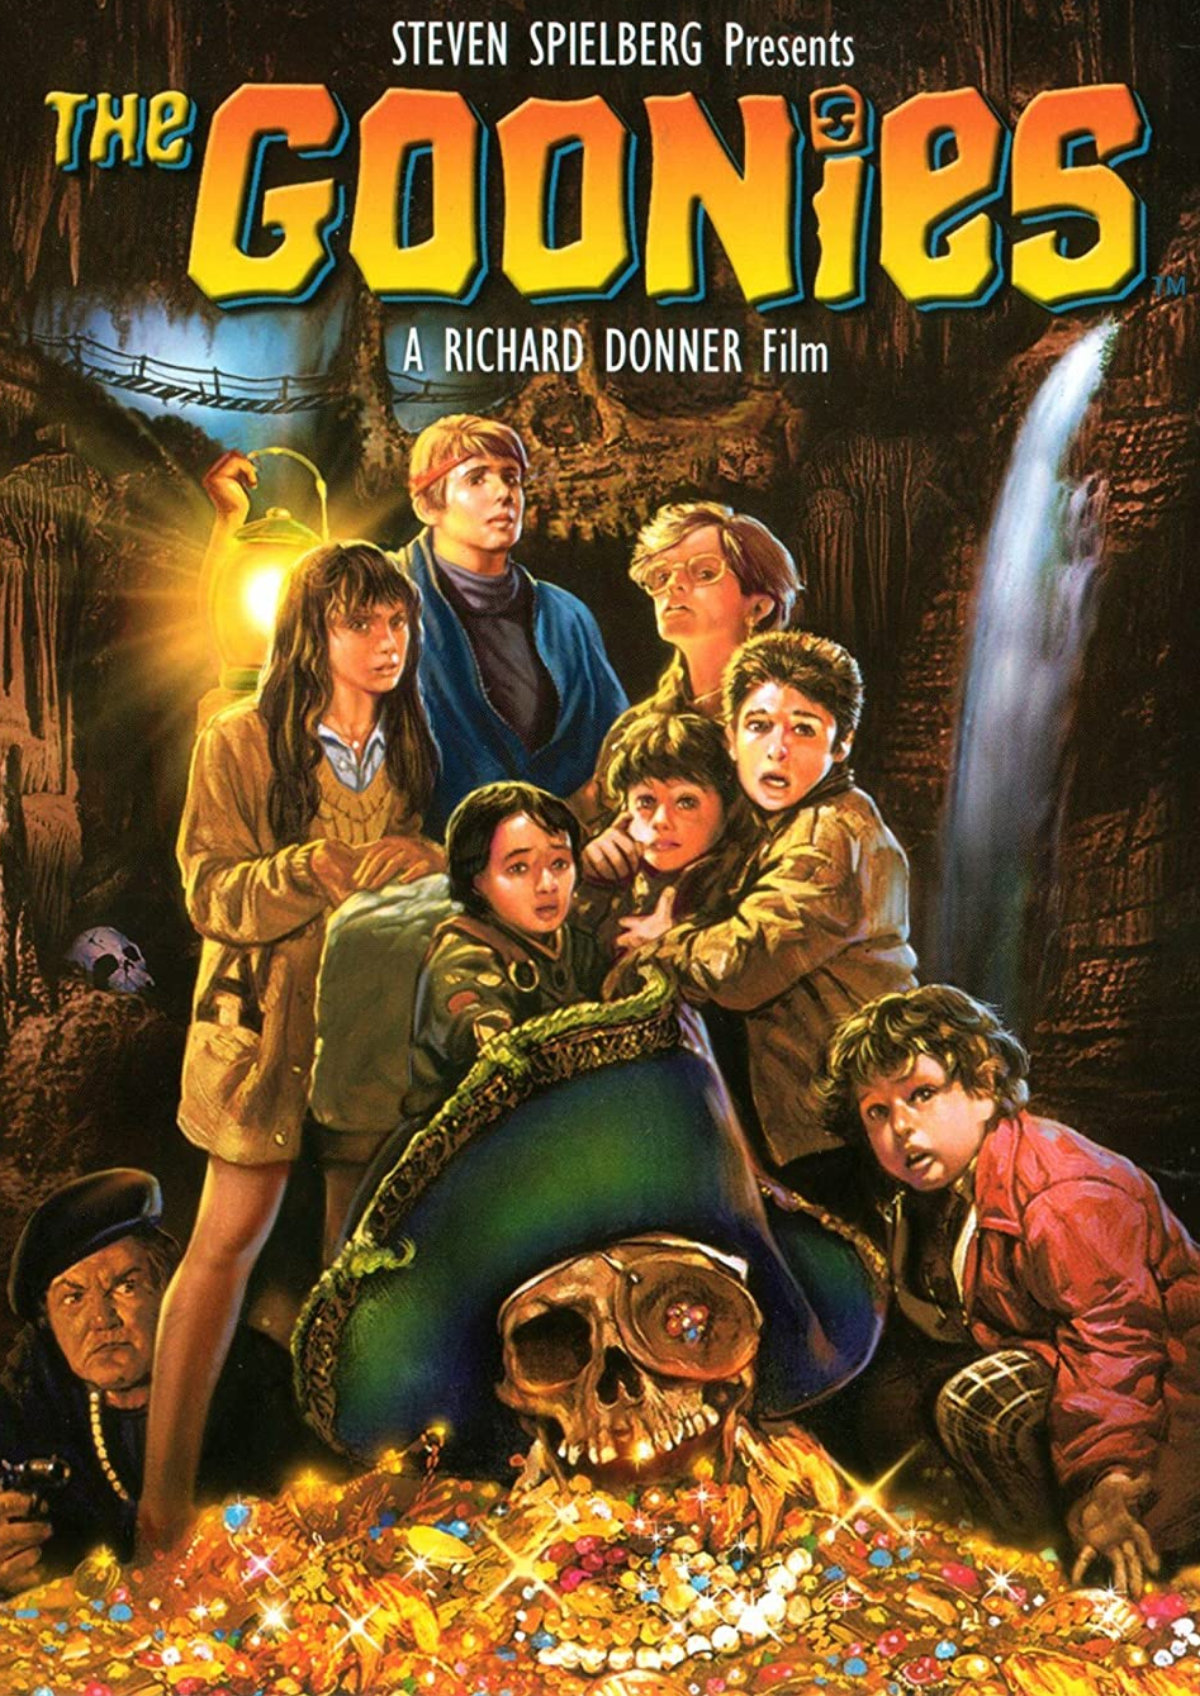 'The Goonies' movie poster